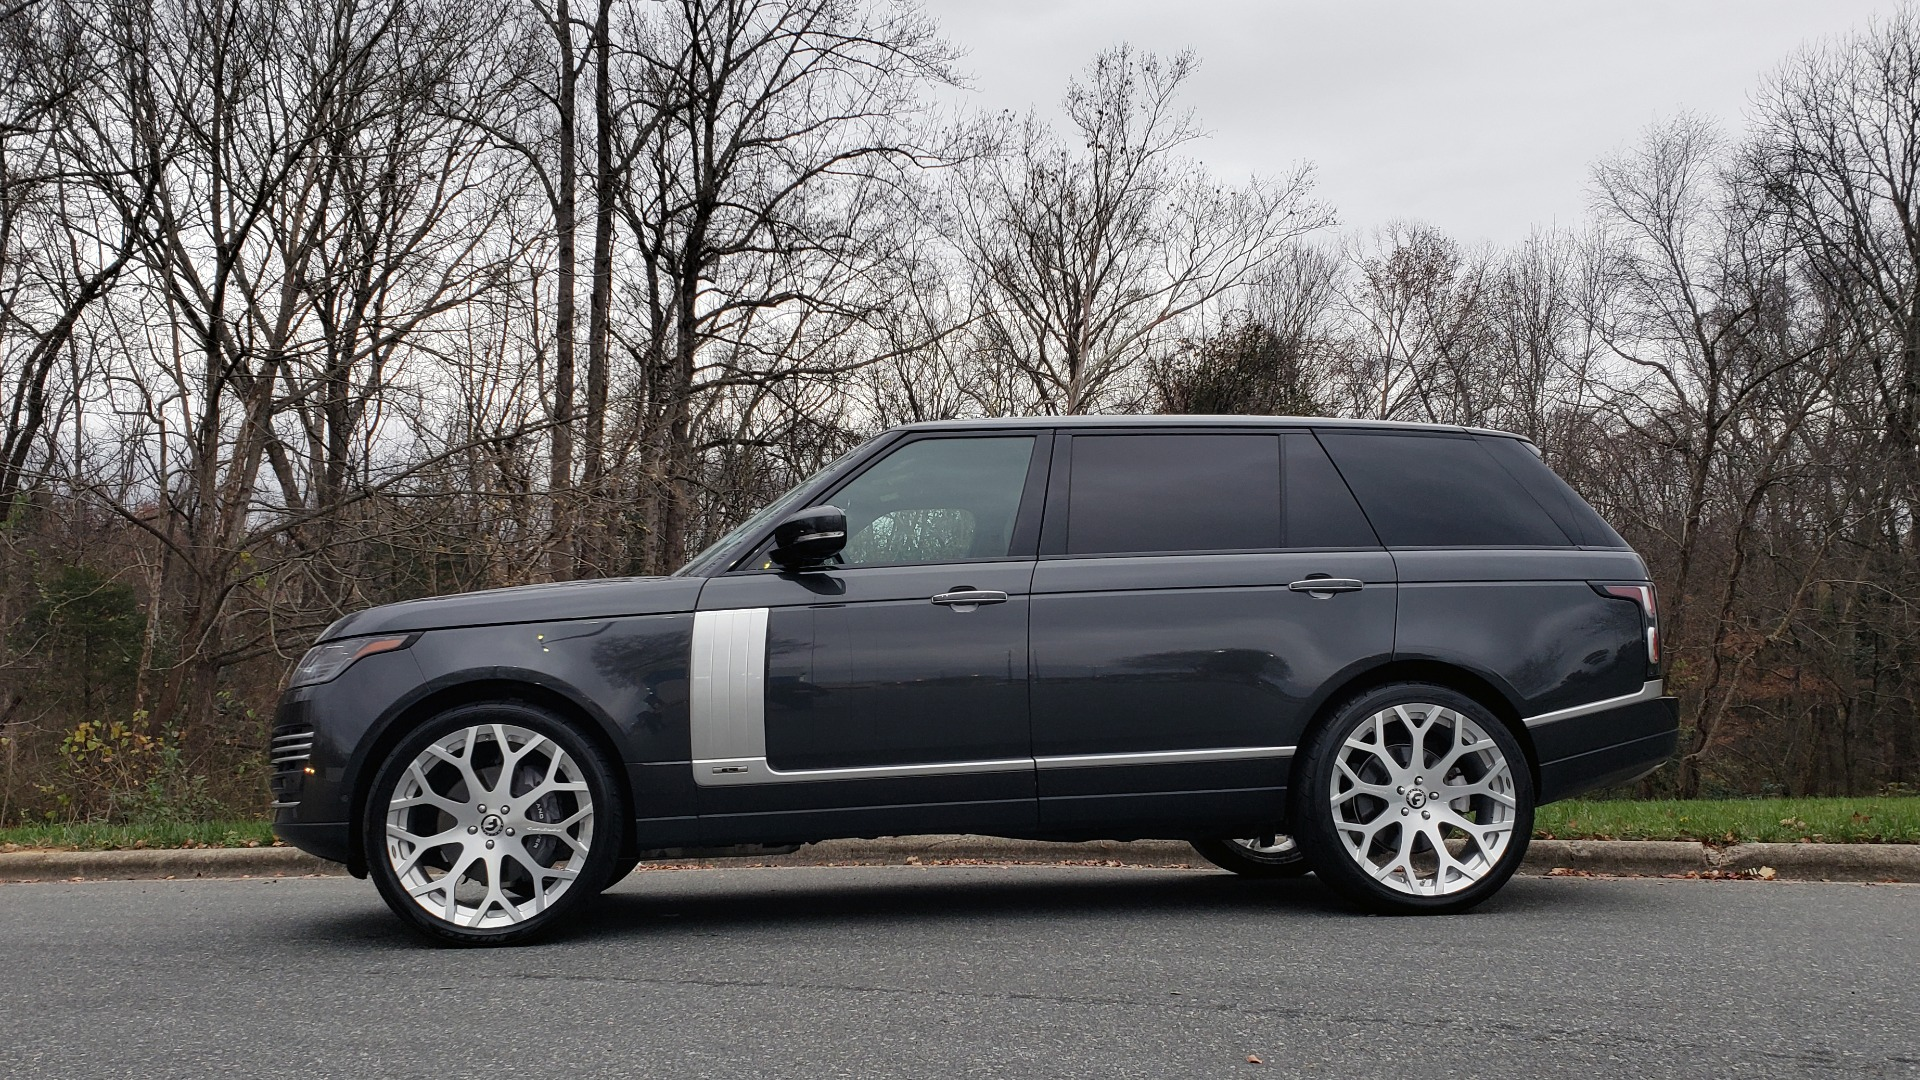 Used 2018 Land Rover RANGE ROVER AUTOBIOGRAPHY SC V8 / LONG / NAV / PANOROOF / ENT SYS / REARVIEW for sale $117,999 at Formula Imports in Charlotte NC 28227 3